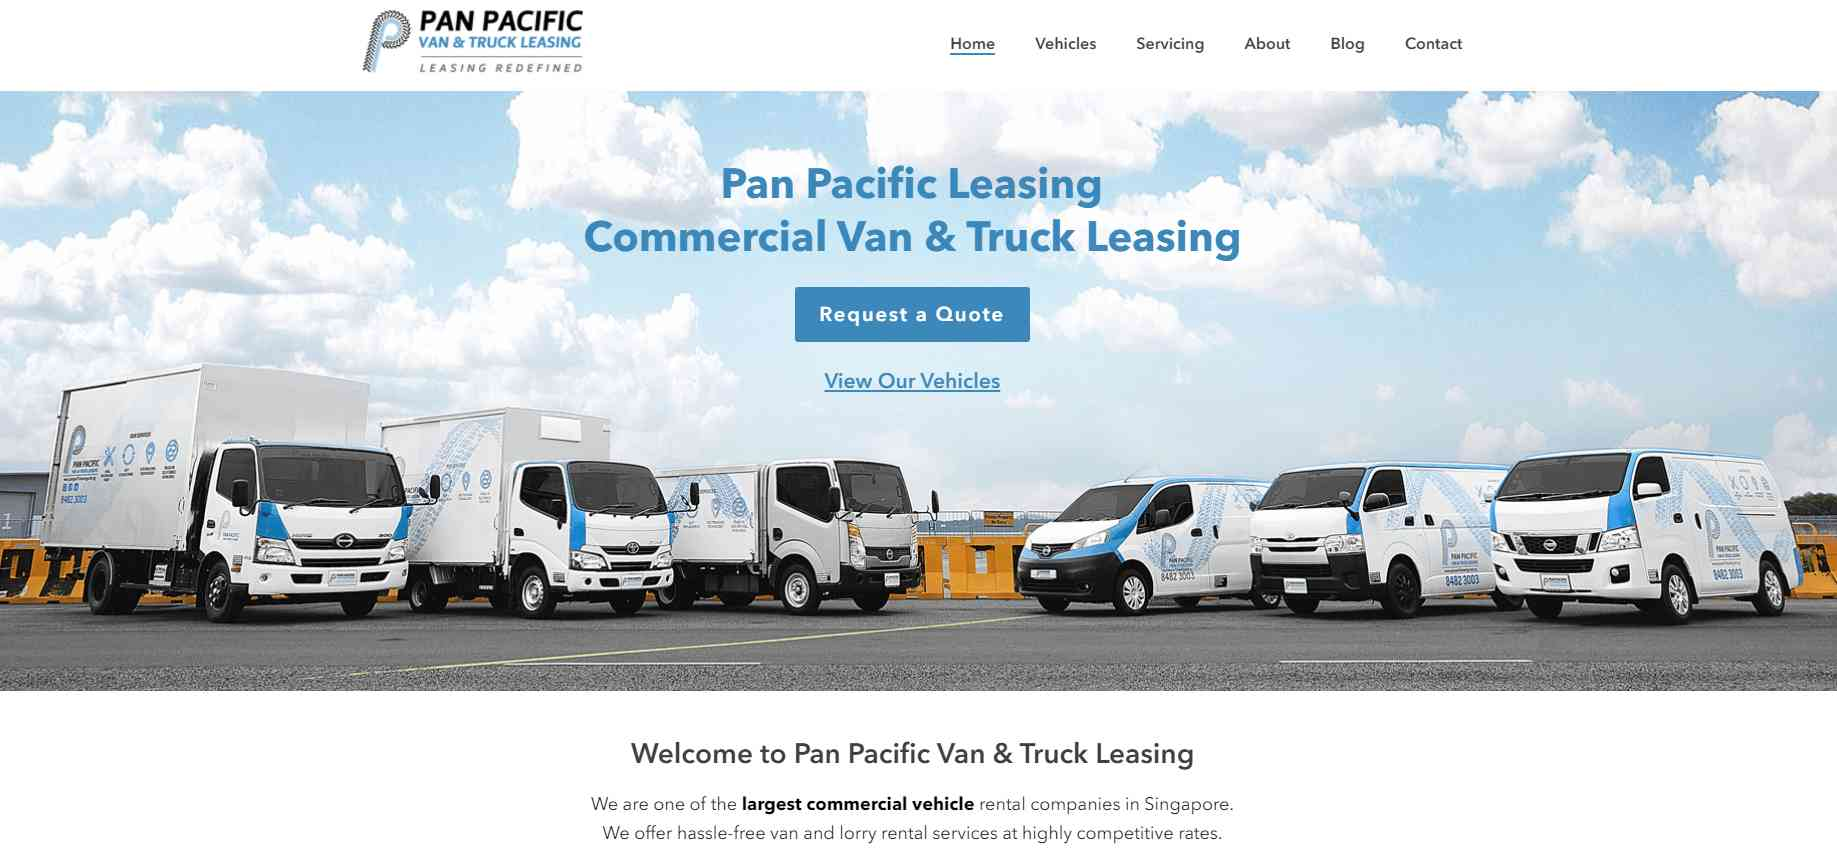 Pan Pacific Top Van Rental Service Providers in Singapore